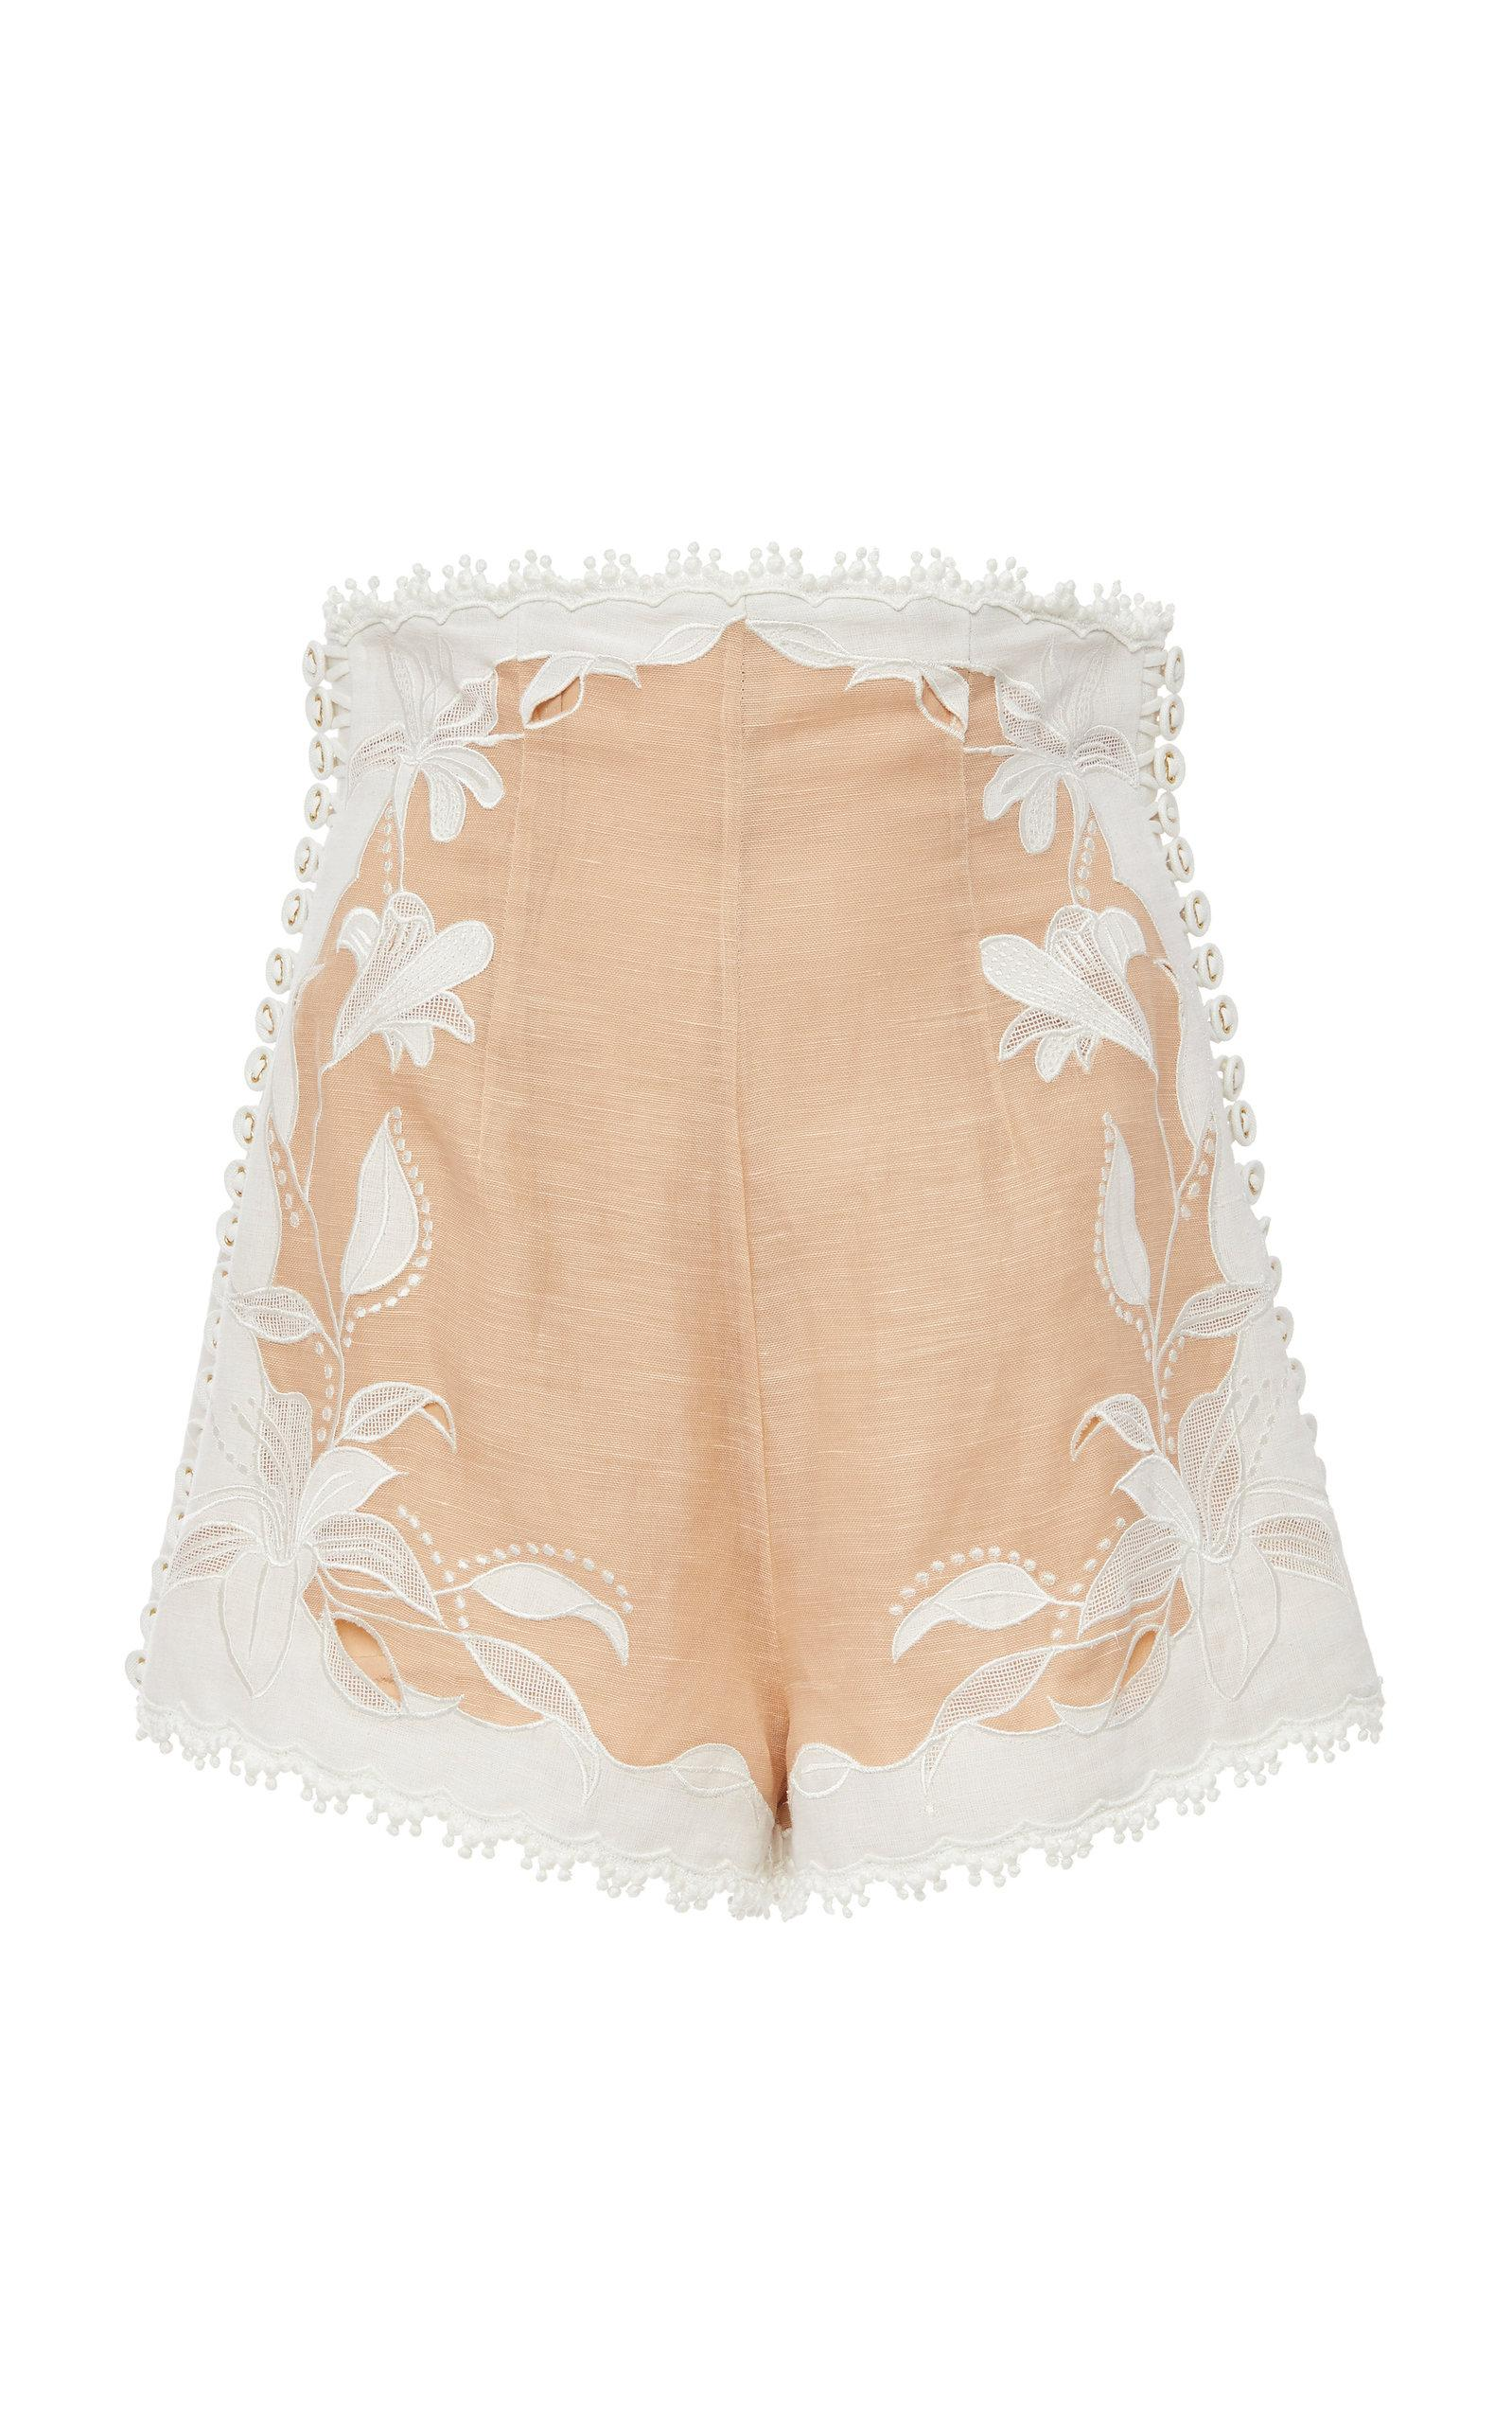 Zimmermann Corsage Lily Embroidered High-Waist Shorts In Neutral